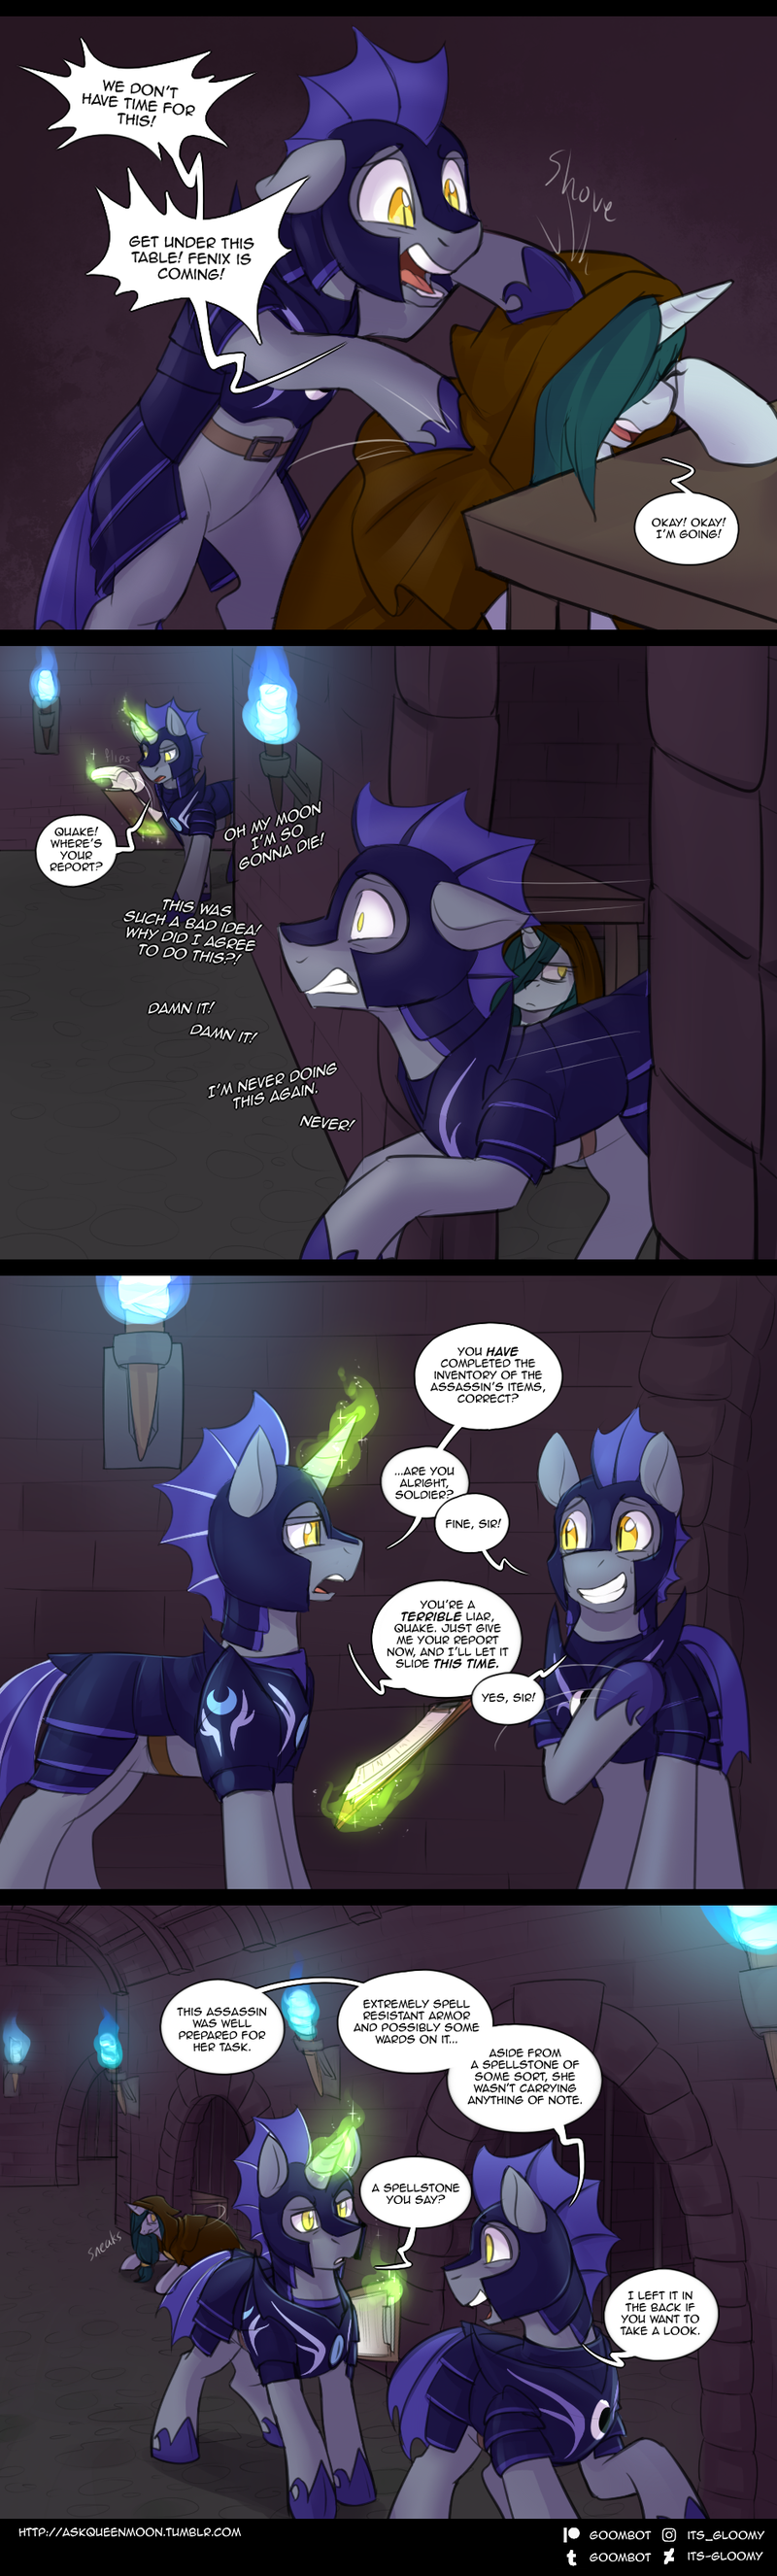 Page 15 - Part 4